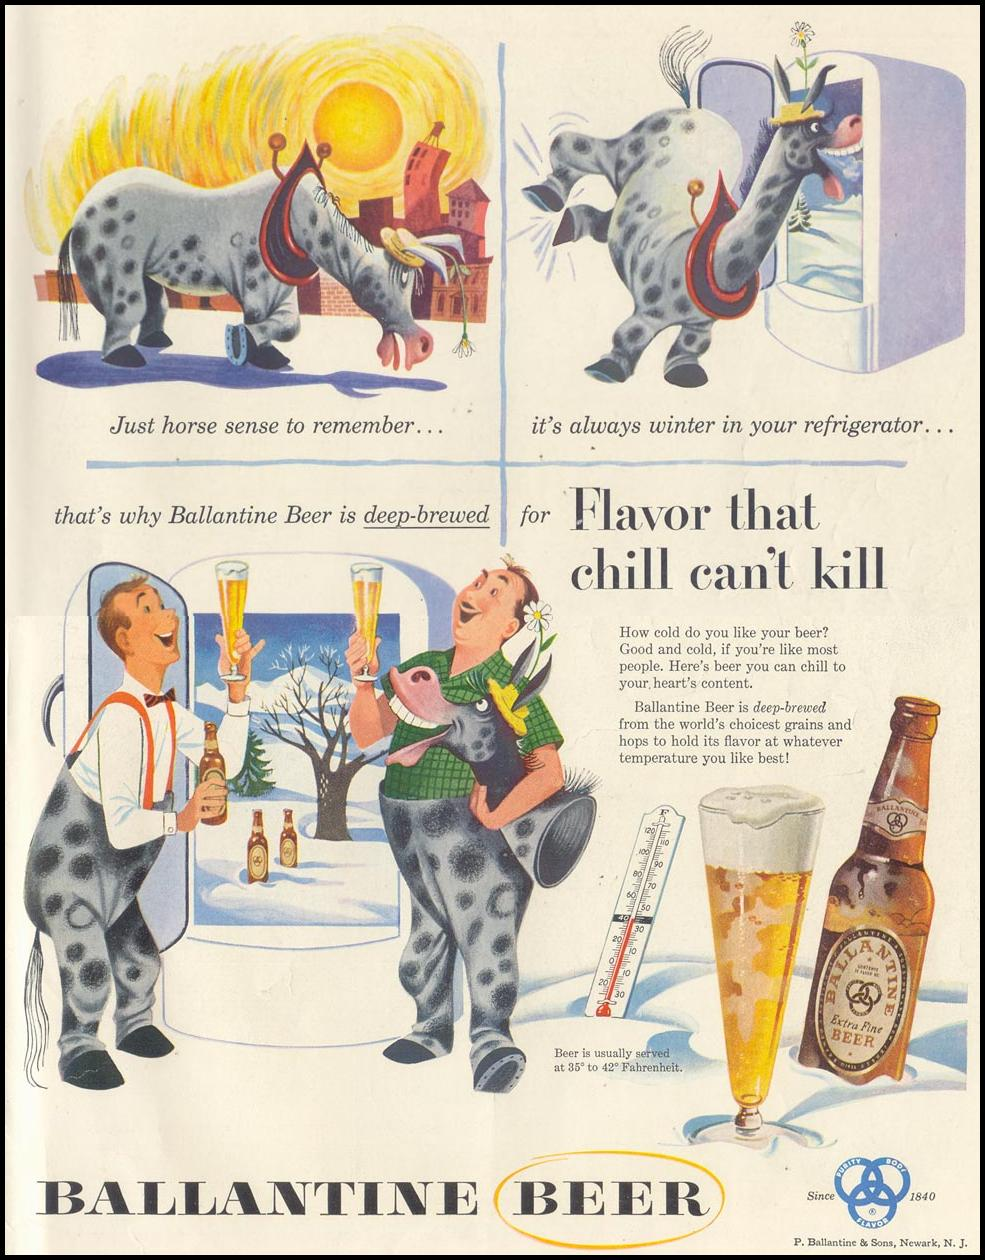 BALLANTINE BEER LIFE 07/06/1953 INSIDE BACK